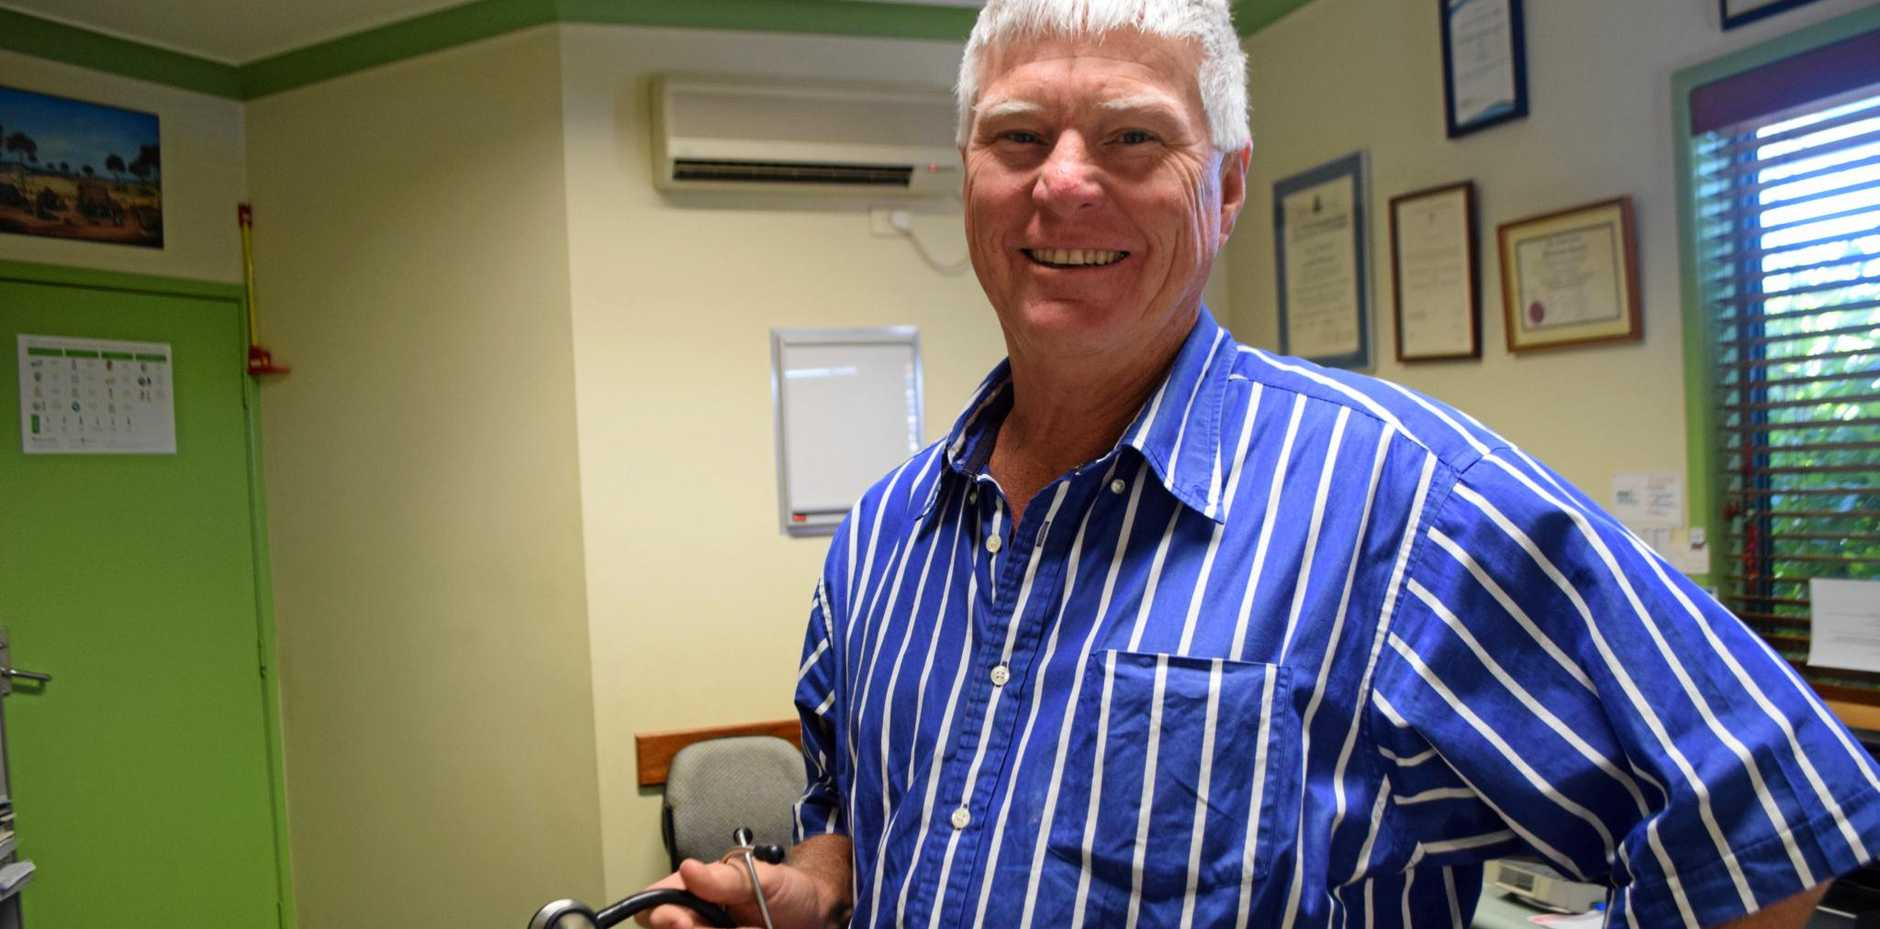 COUNTRY PRACTICE: Dr Ross Hetherington has been one of Warwick's favourite doctors for over 20 years.